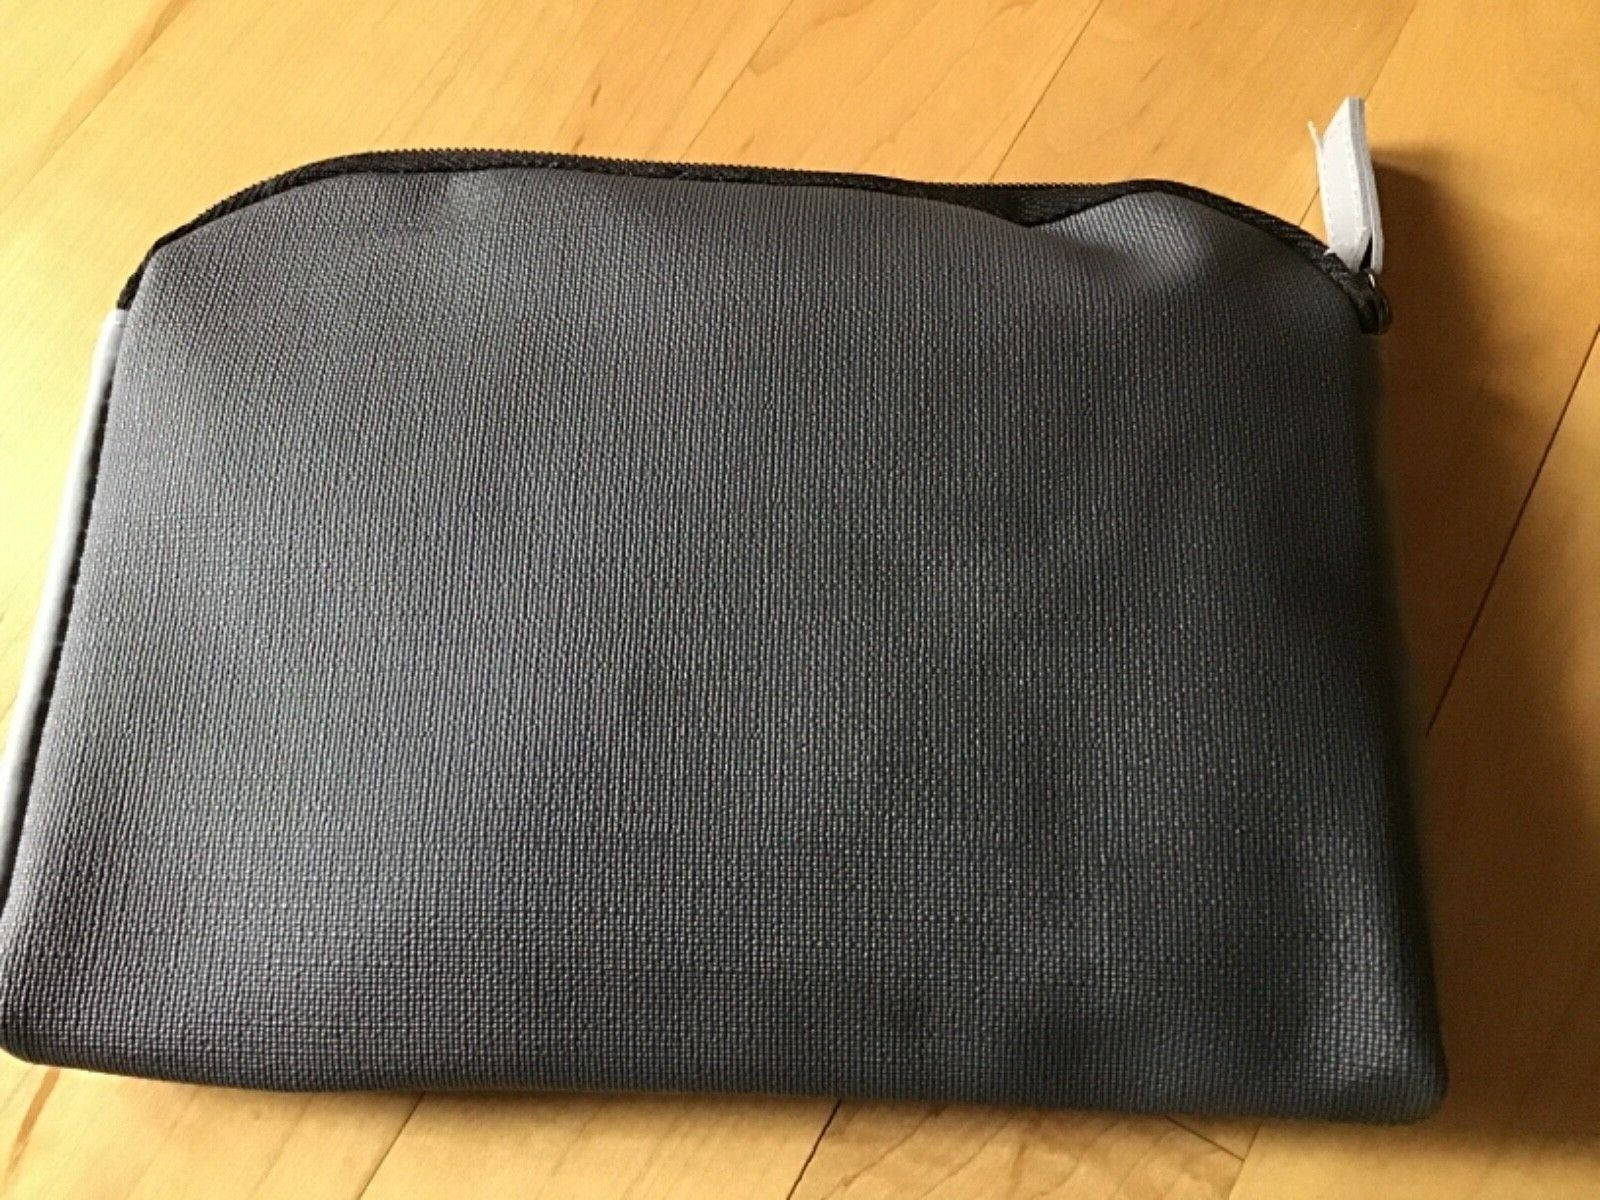 TUMI TOILETRY BAG, TWO-TONE GRAY, NEW, MADE FOR AIRLINE - $6.99